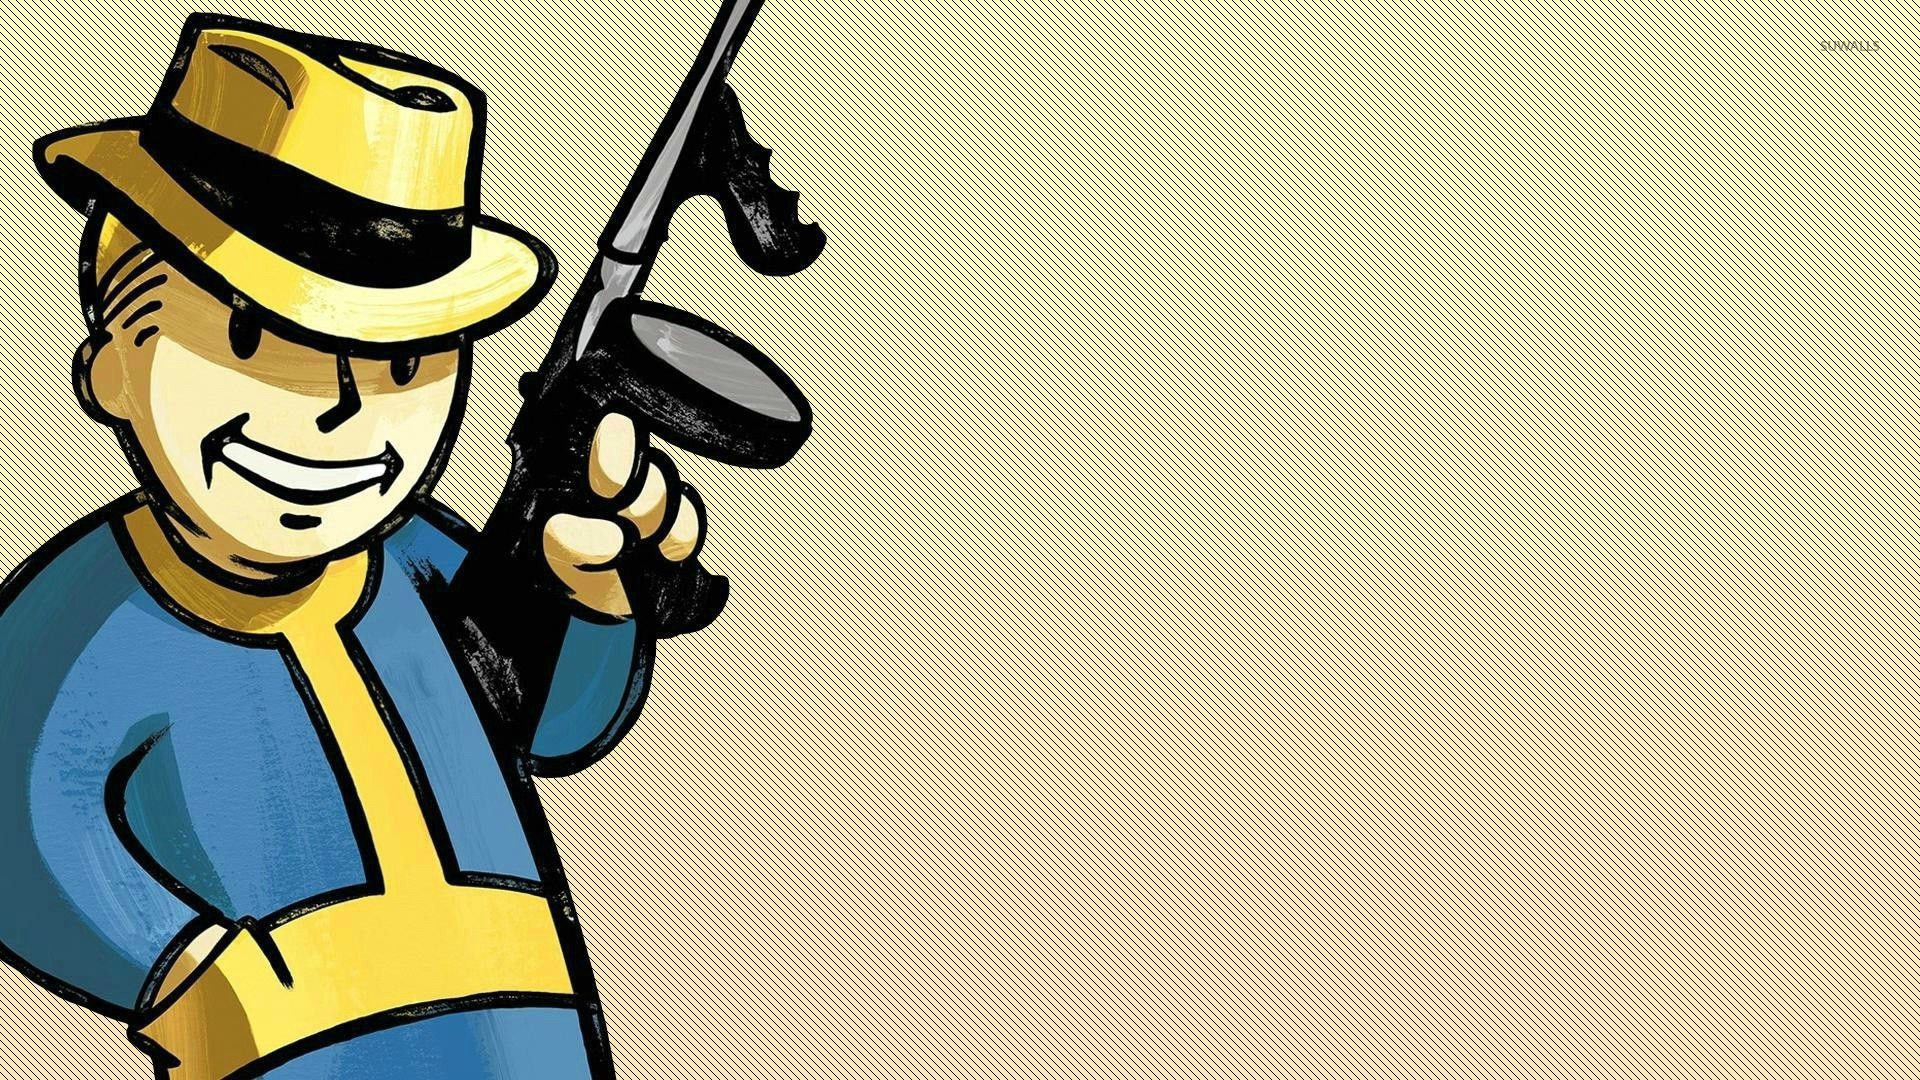 Fallout Vault Boy Wallpaper Download Free Amazing High